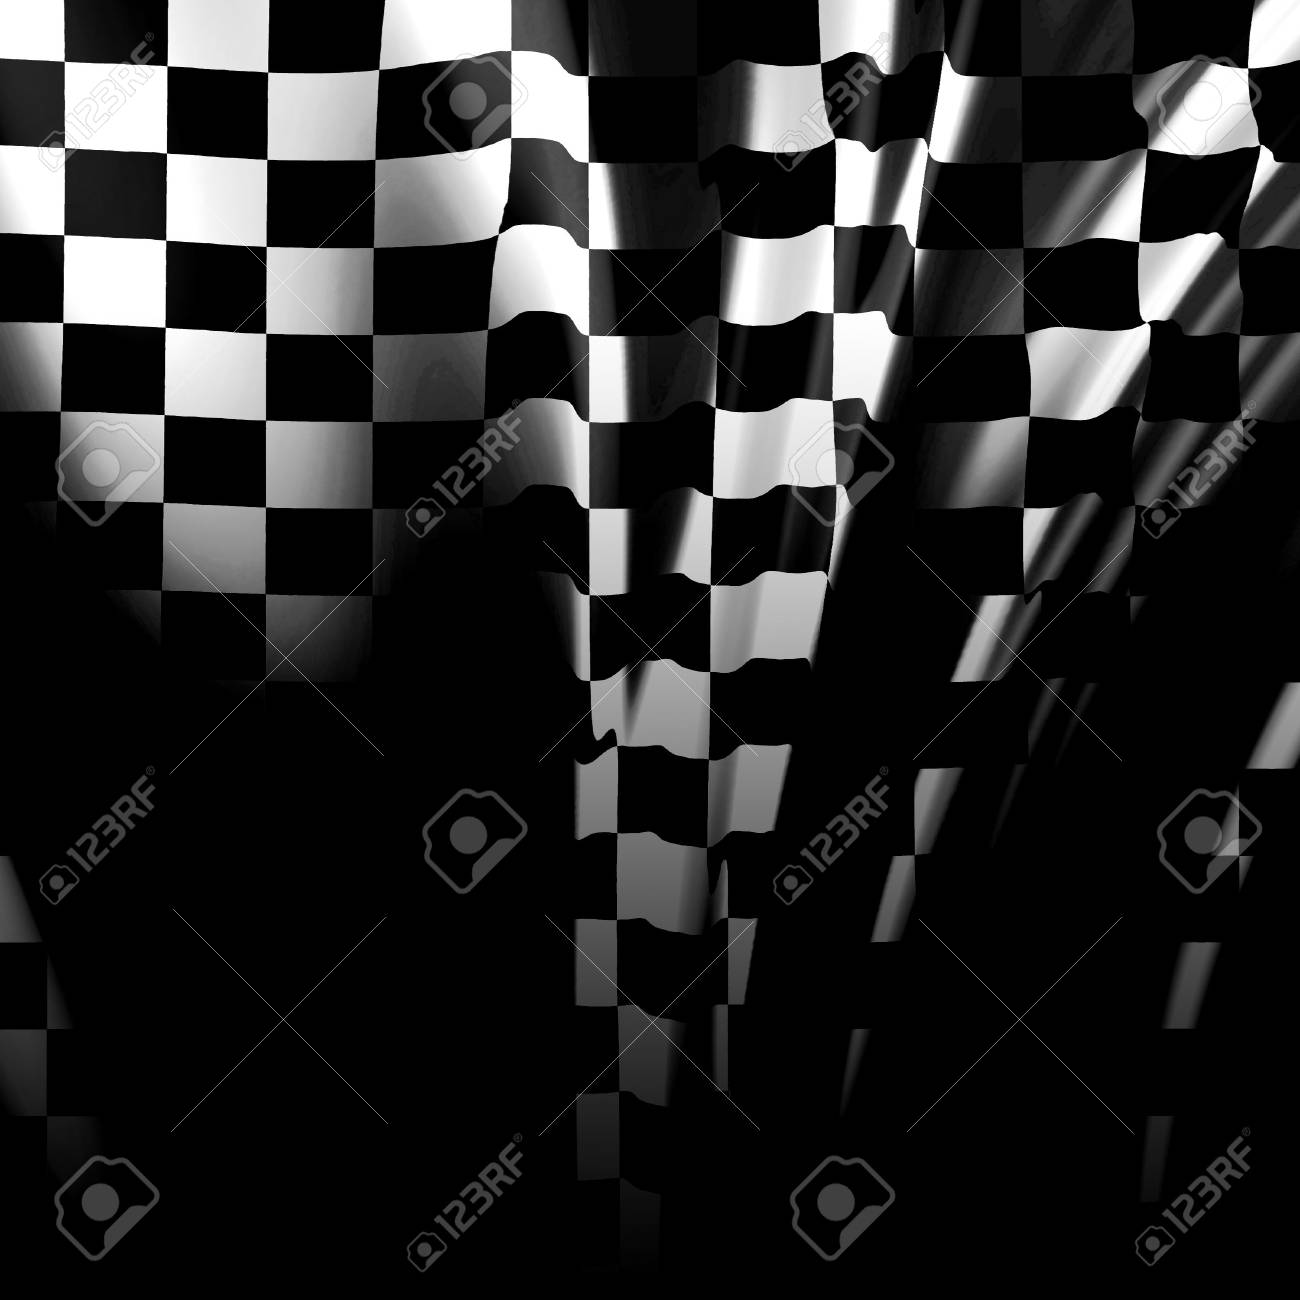 Checkered flag waving in the wind with some folds Stock Photo - 3524751